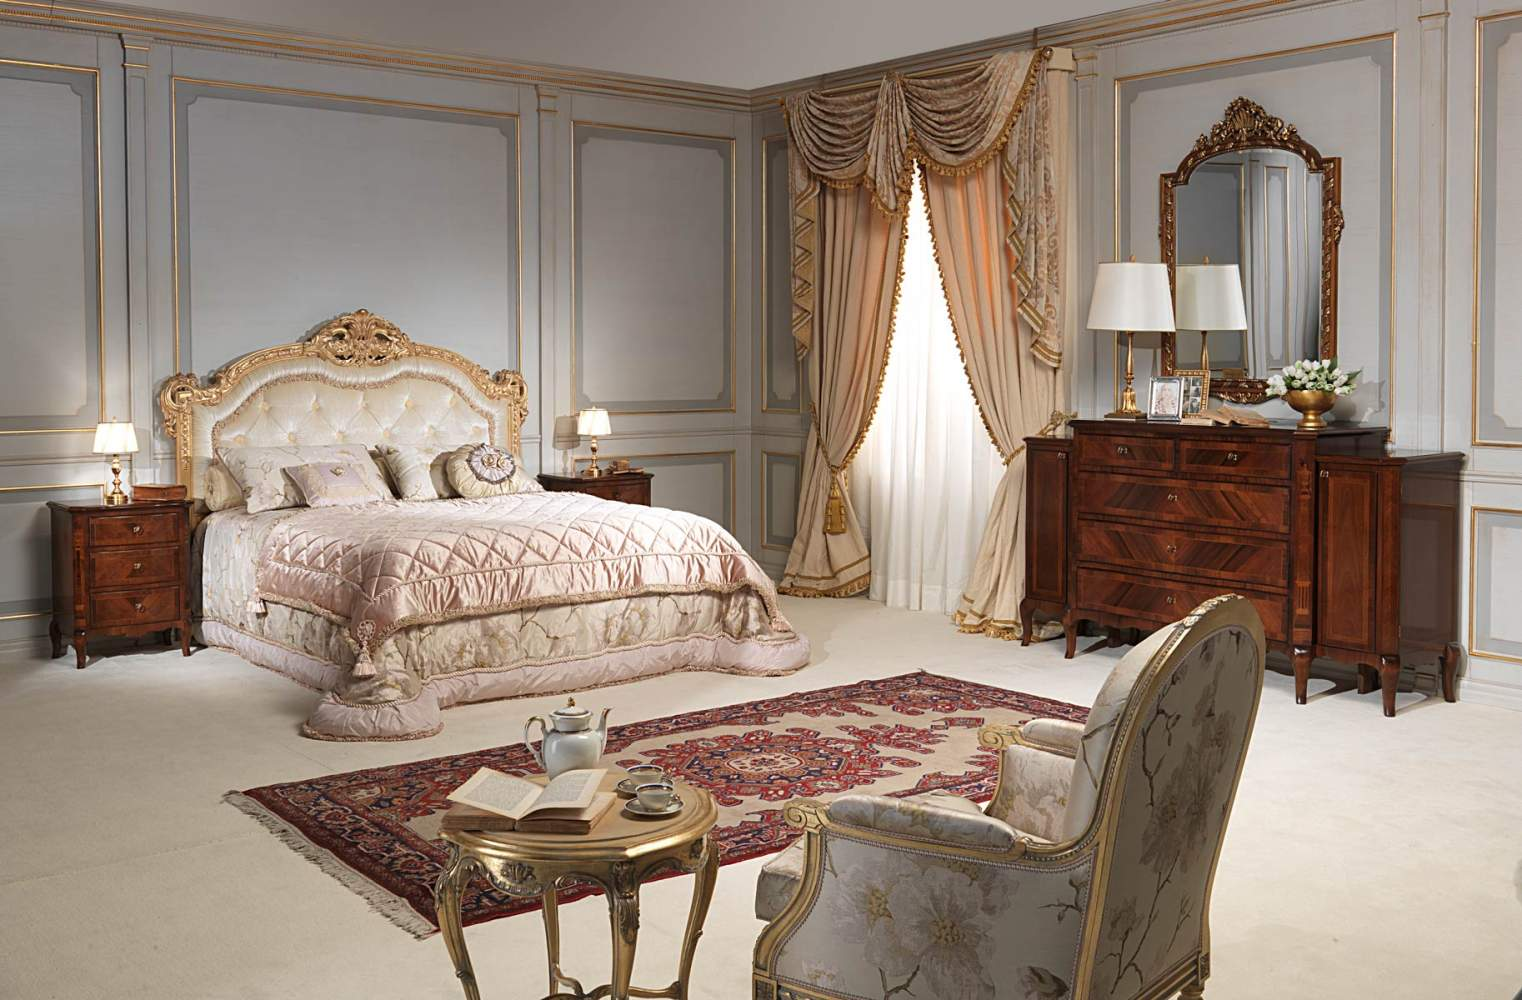 Classic french bedroom 19th century style